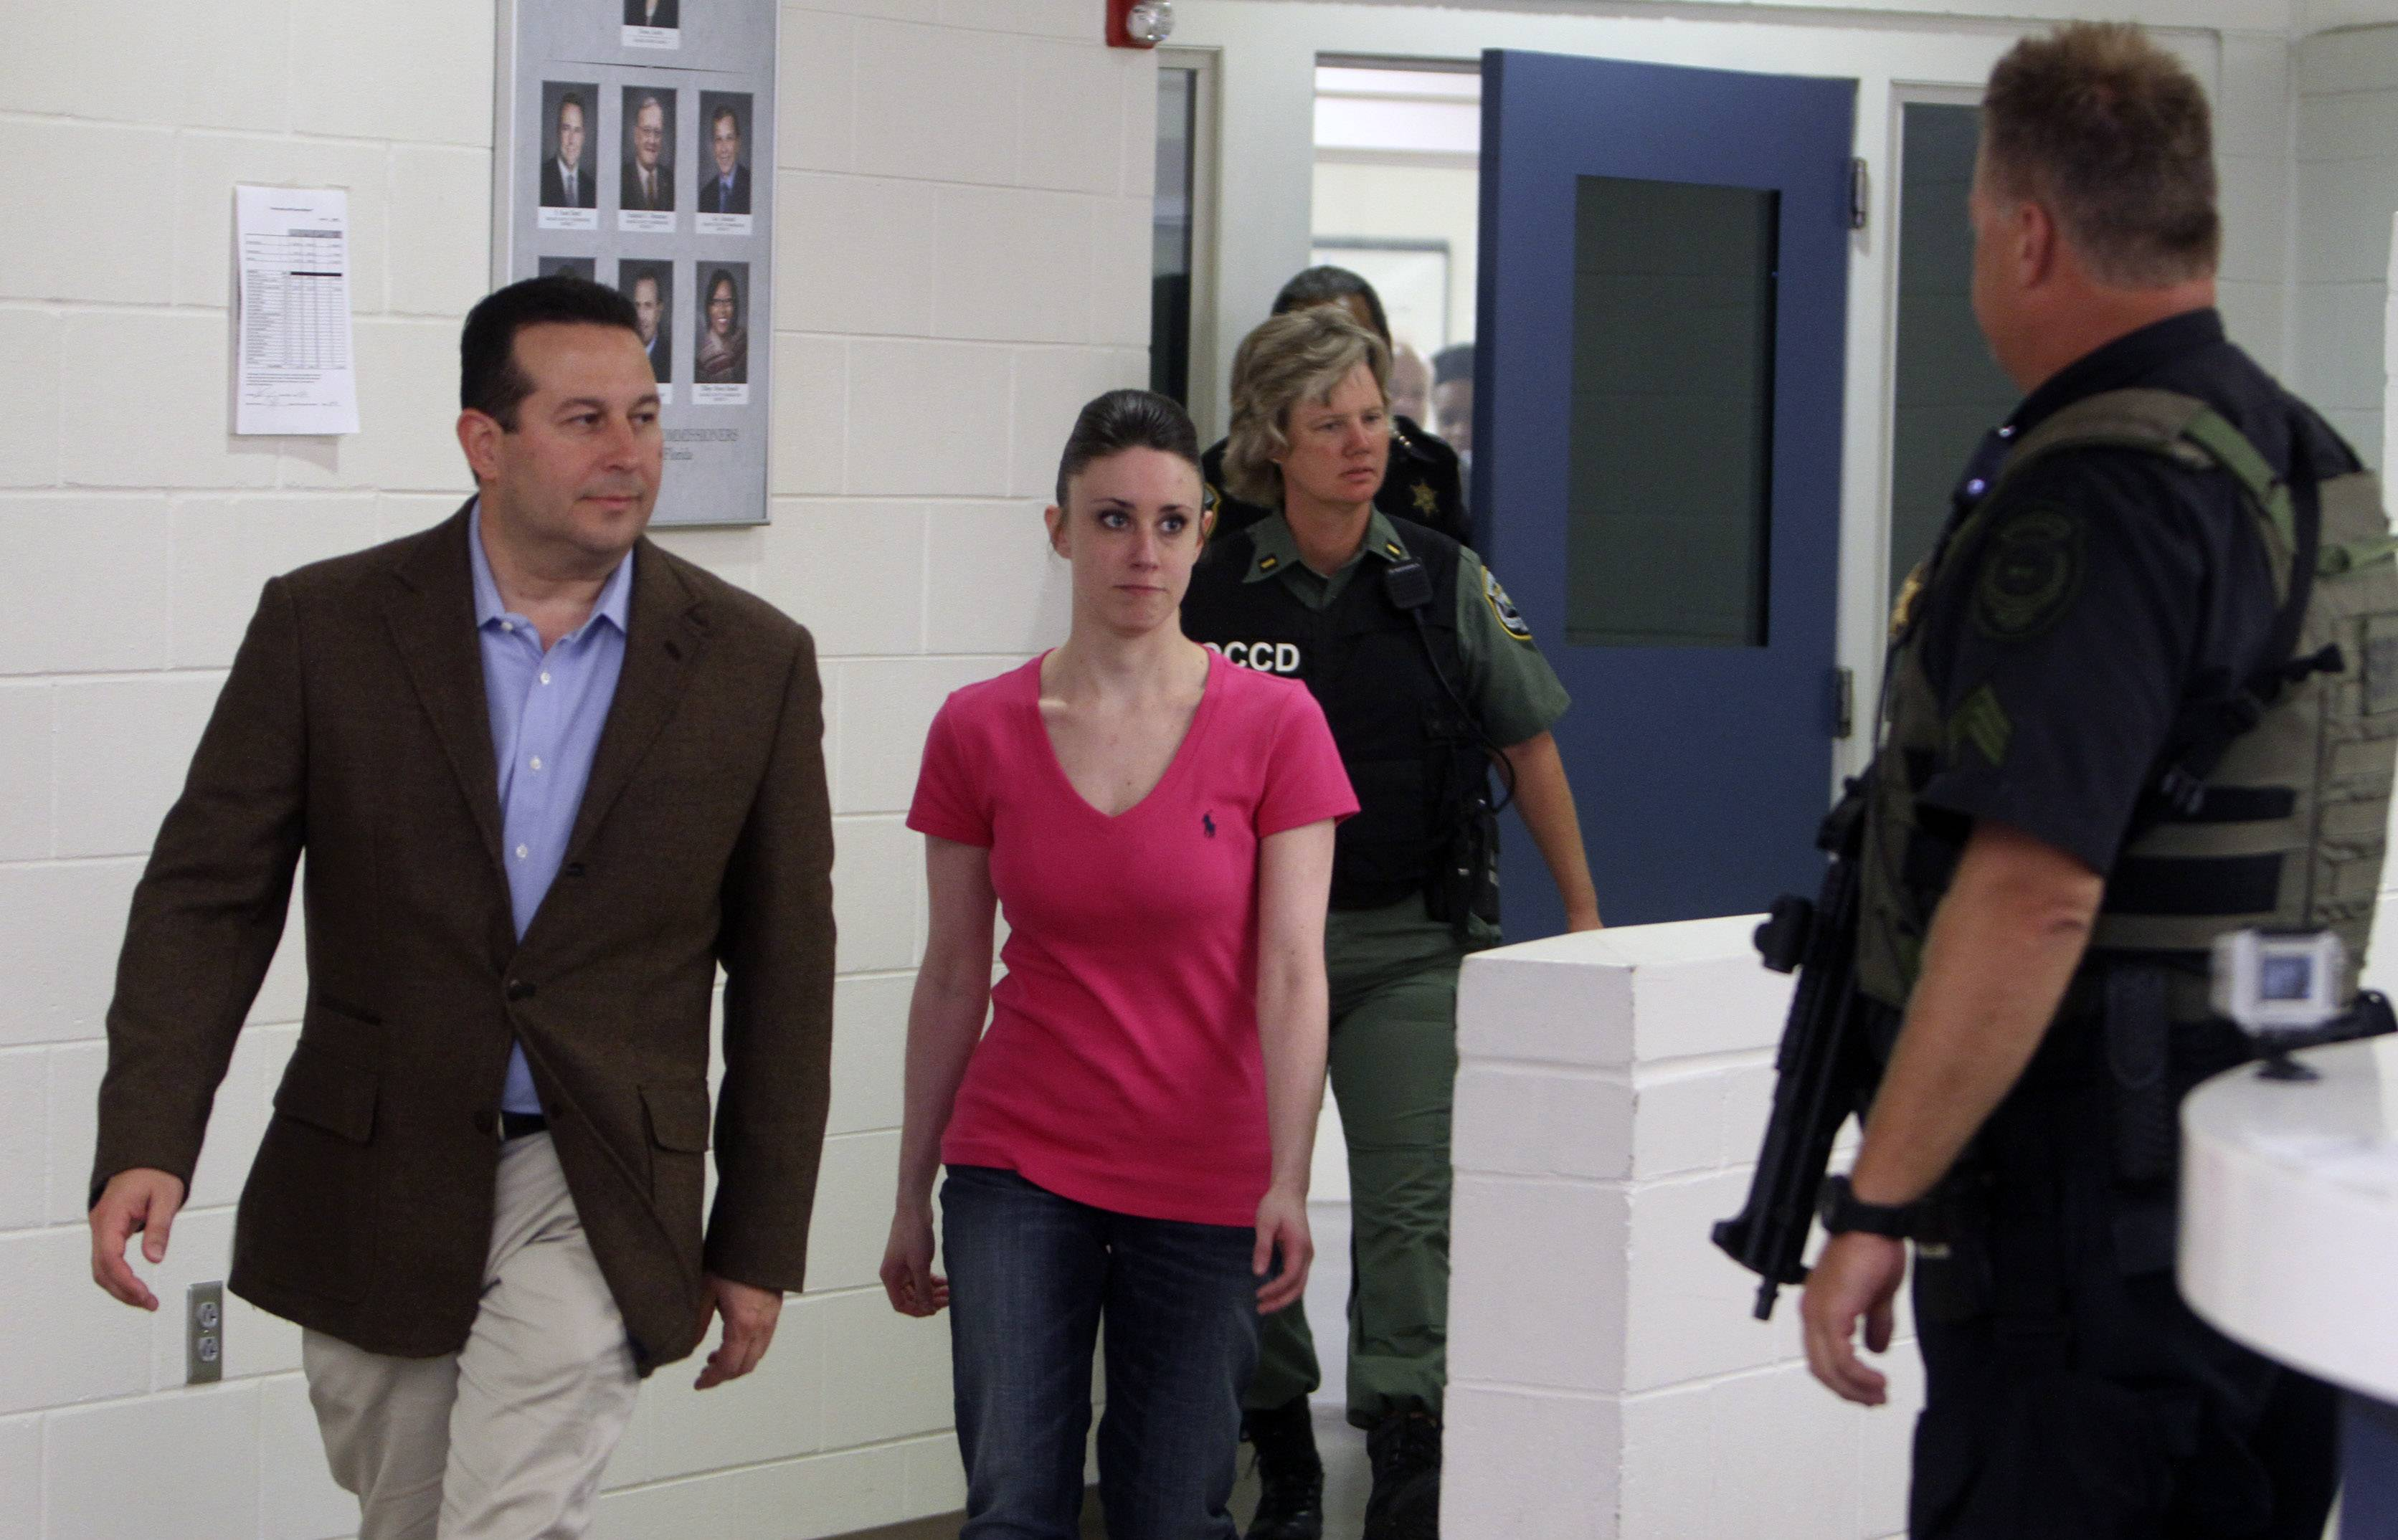 Casey Anthony walks out of the Orange County Jail with her attorney Jose Baez, left, during her release in Orlando, Fla., early Sunday, July 17. Anthony was acquitted last week of murder in the death of her daughter, Caylee.